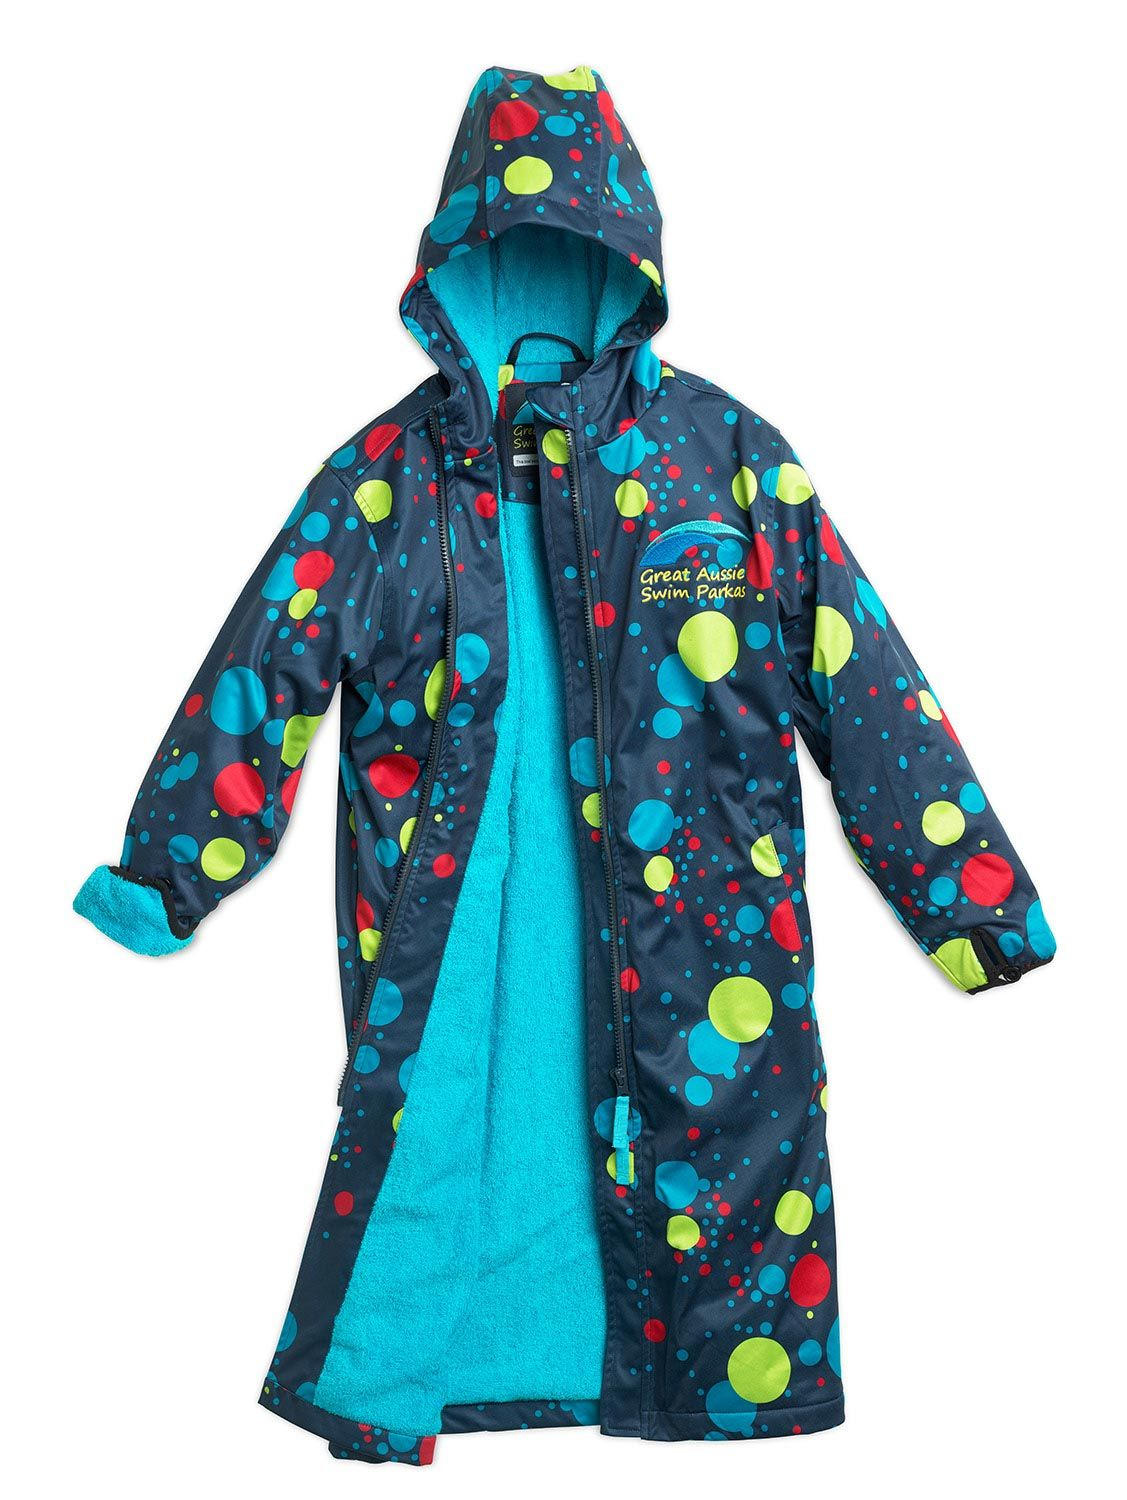 efe1780d5 Related image Learn To Swim, Kids Swimming, Parka, Raincoat, Polka Dots,